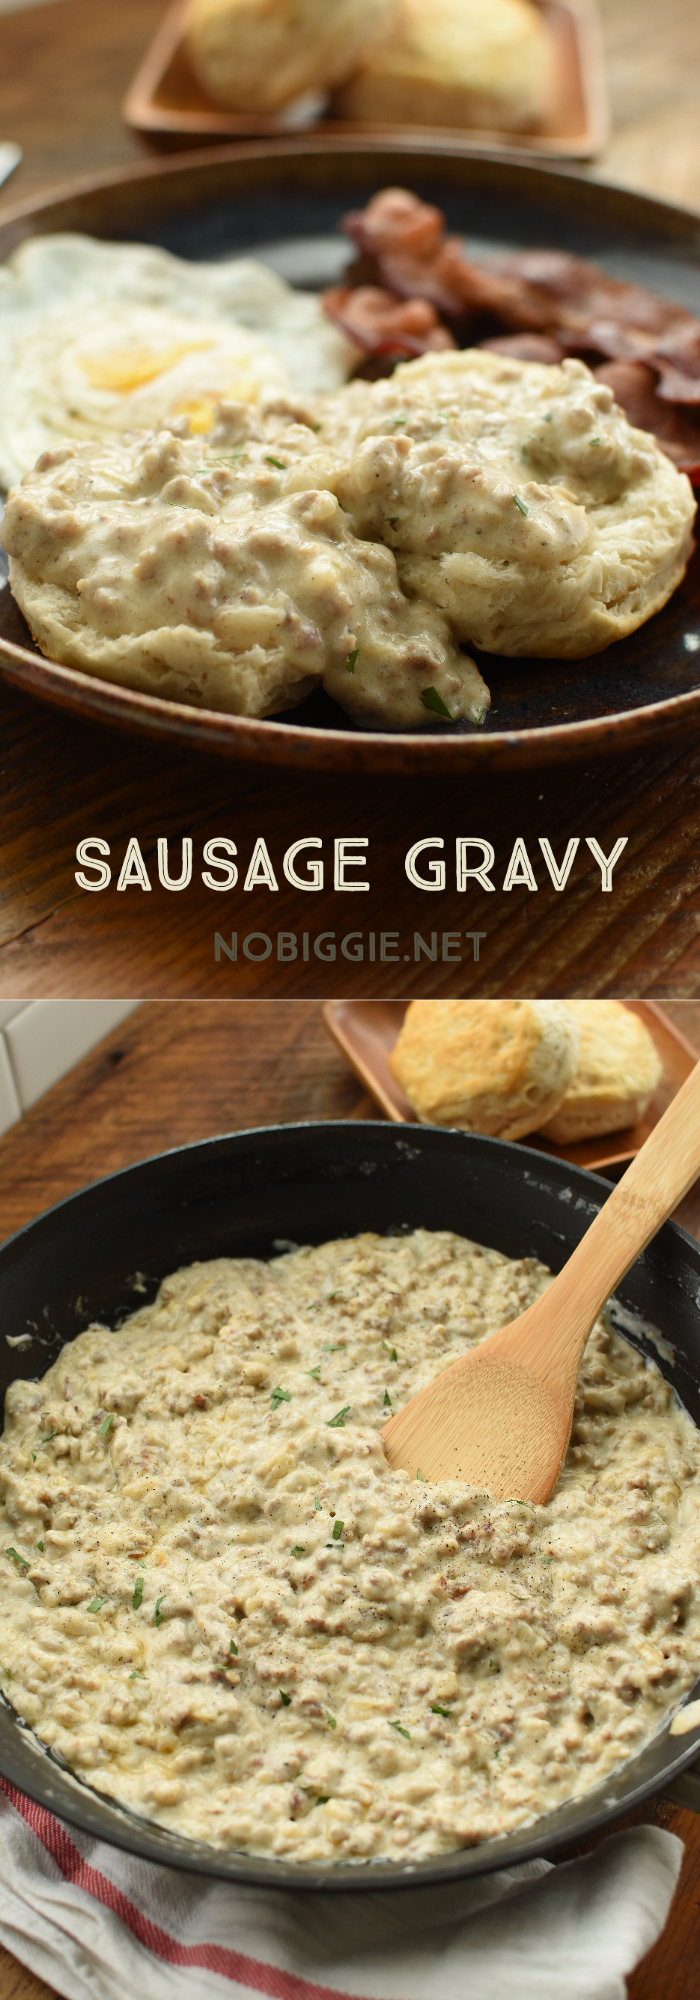 sausage gravy for biscuits and gravy | NoBiggie.net